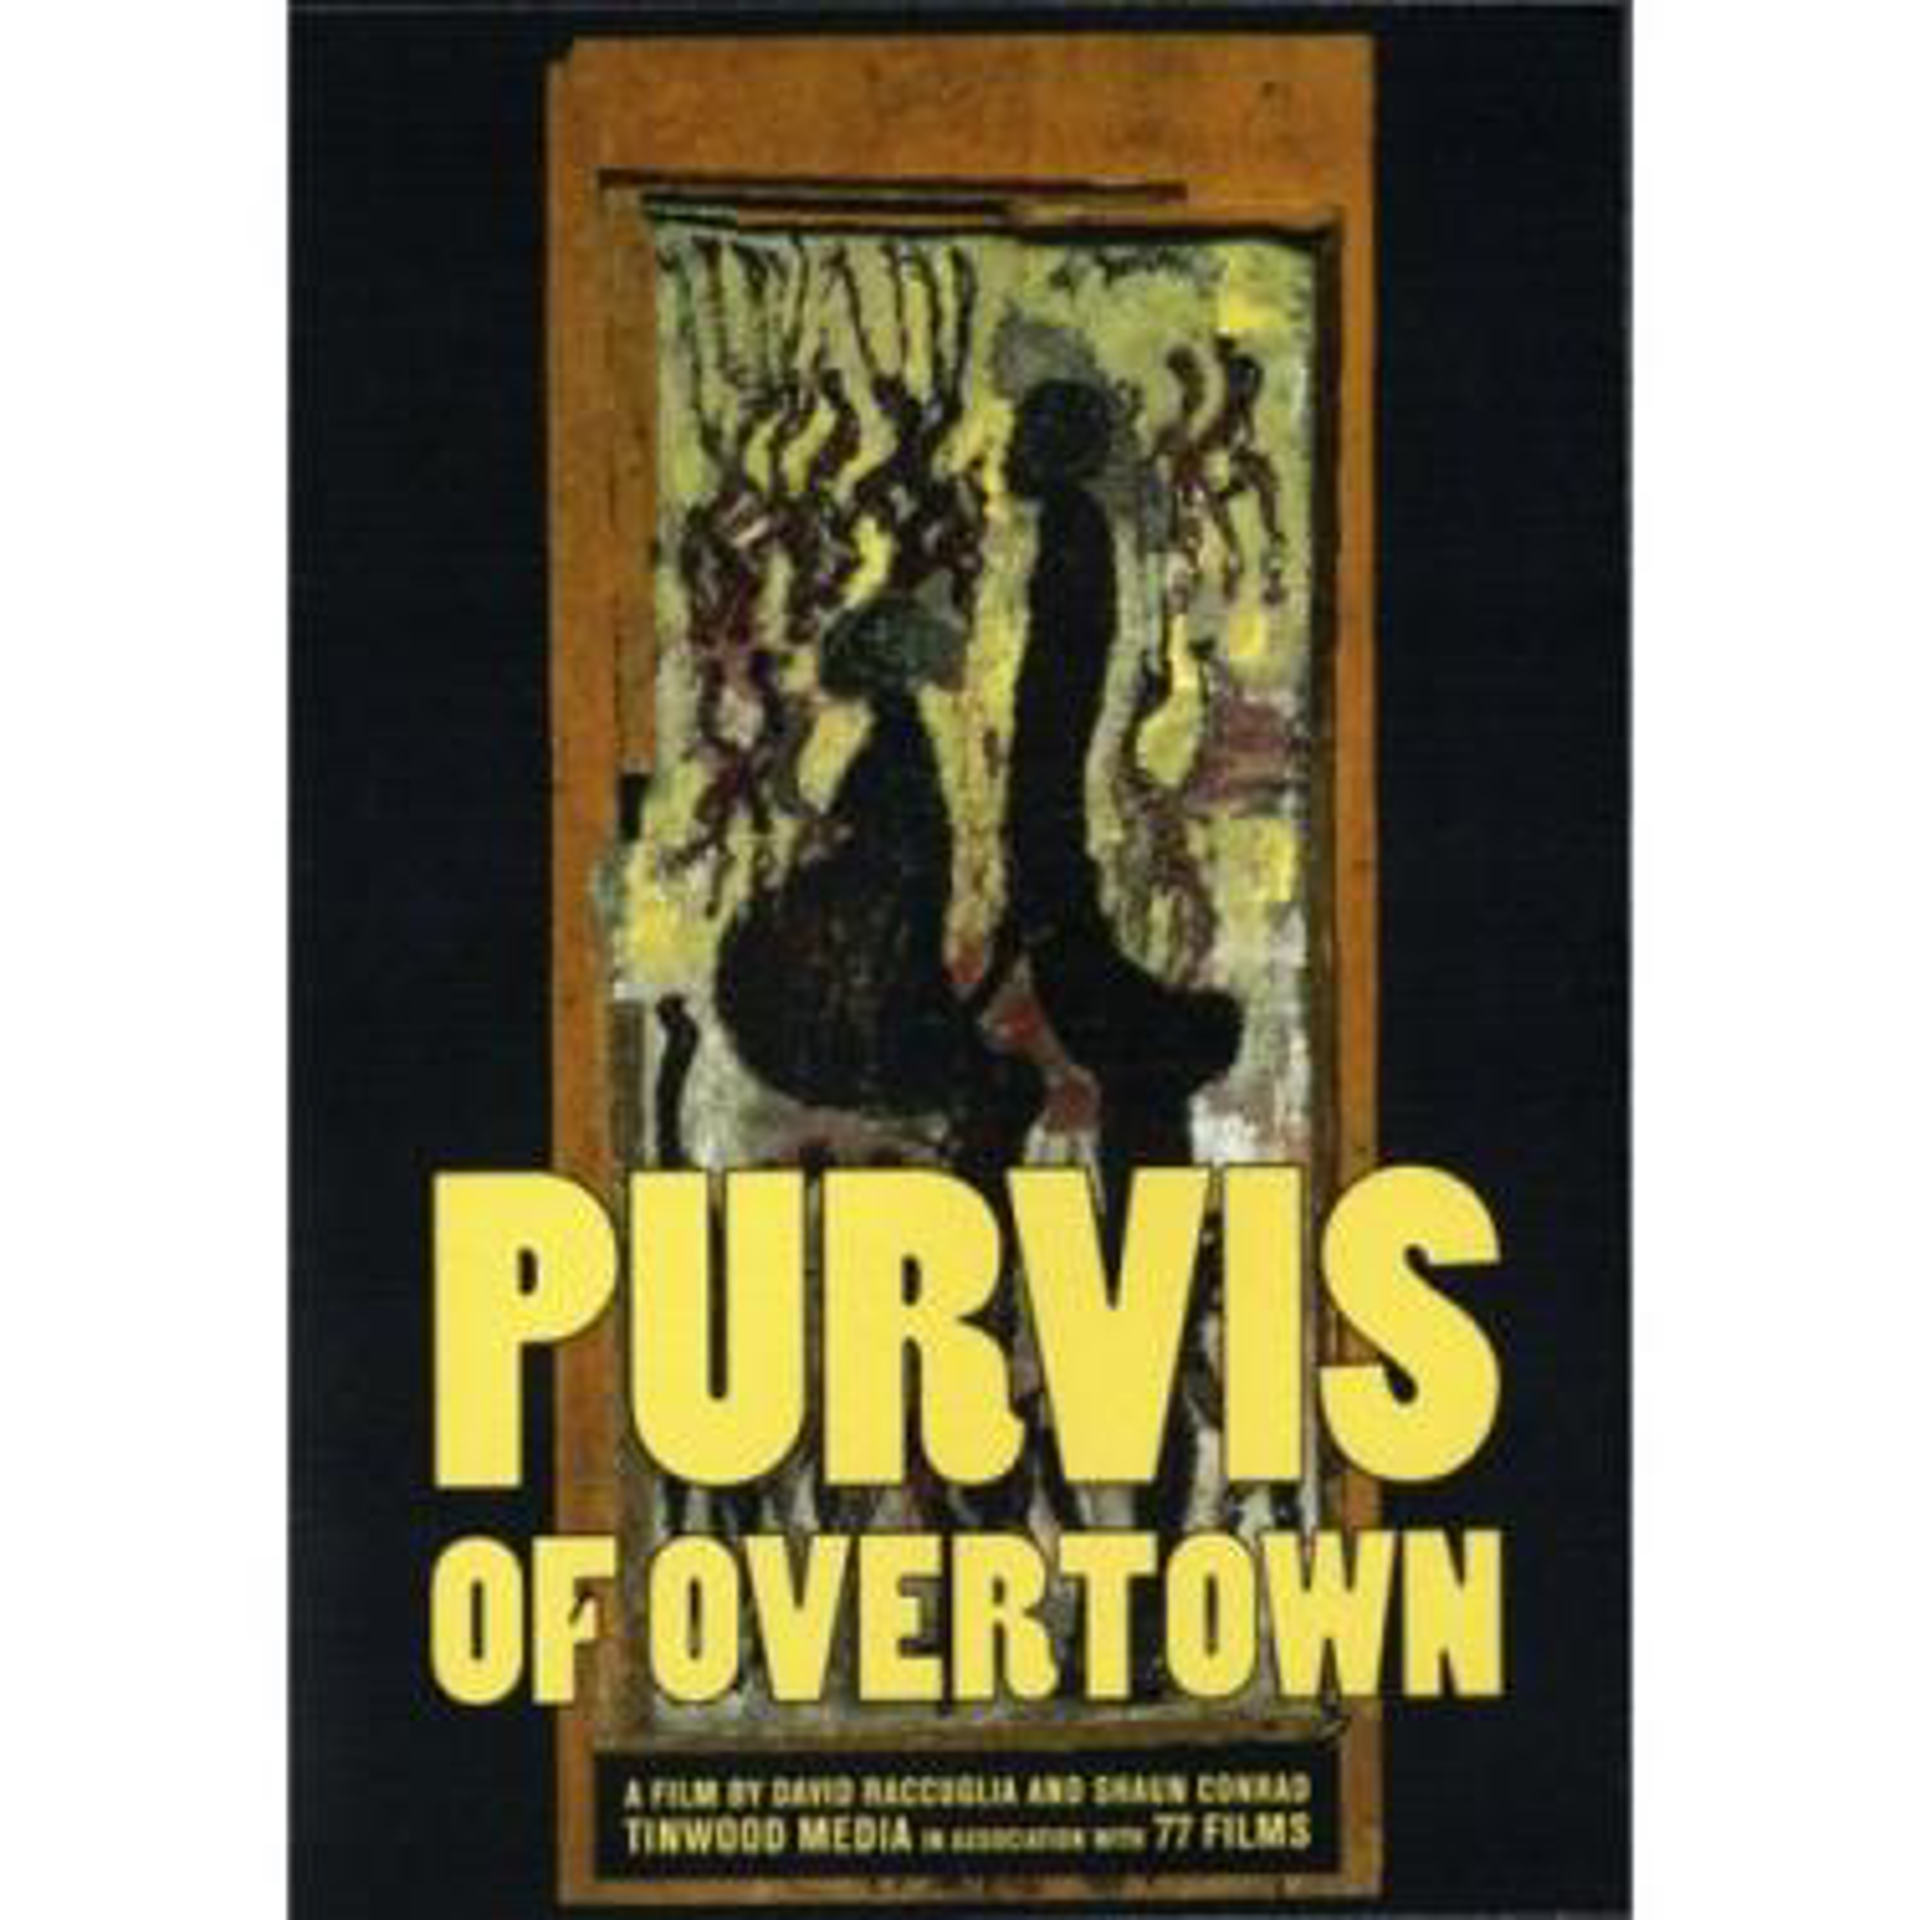 Purvis of Overtown DVD by Purvis Young